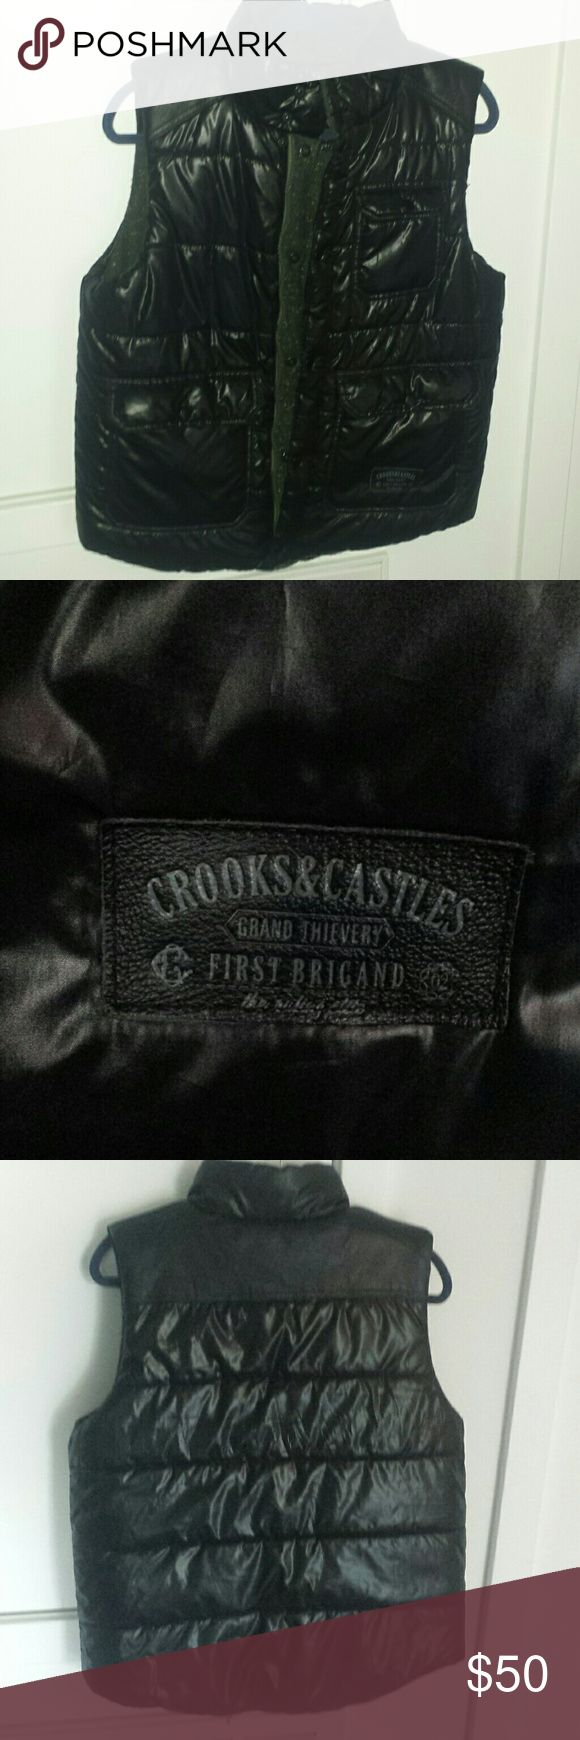 Crooks and Castles Men's Puffer Vest Men's Black non leather puffer vest in very good condition. Also has inside pockets. Crooks and Castles Jackets & Coats Vests